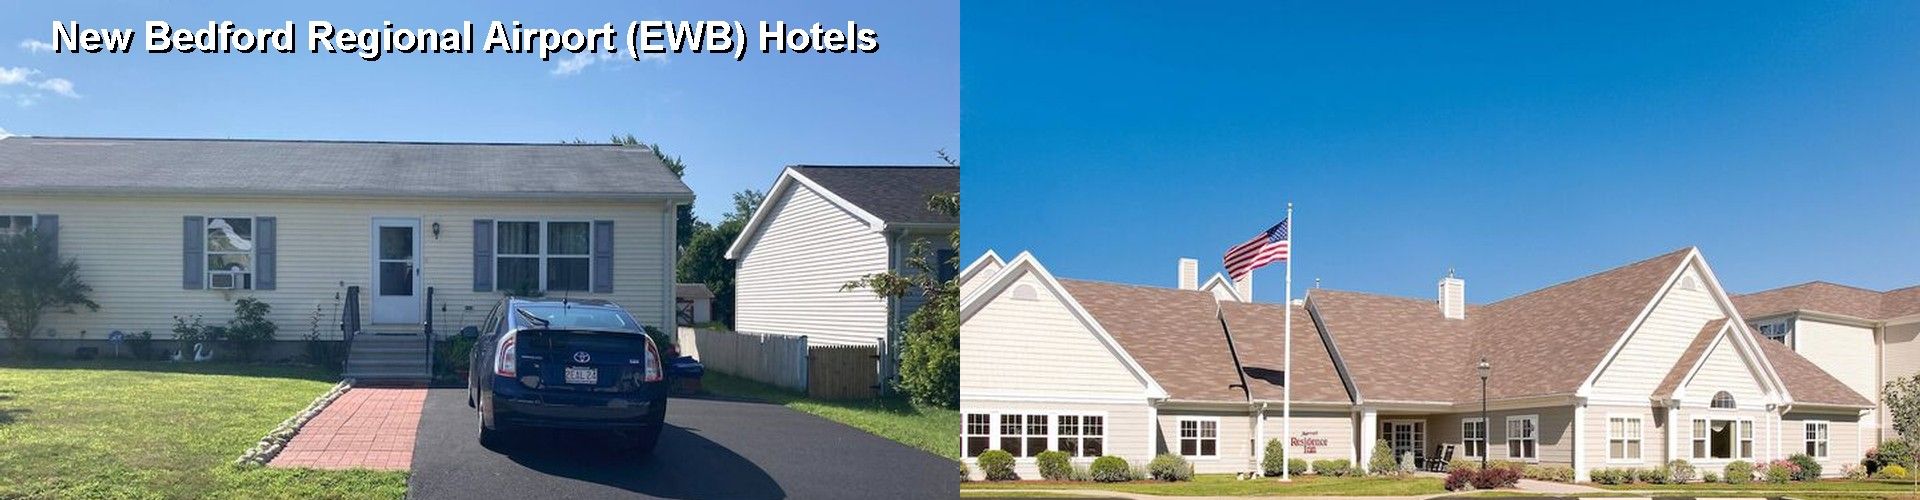 5 Best Hotels near New Bedford Regional Airport (EWB)